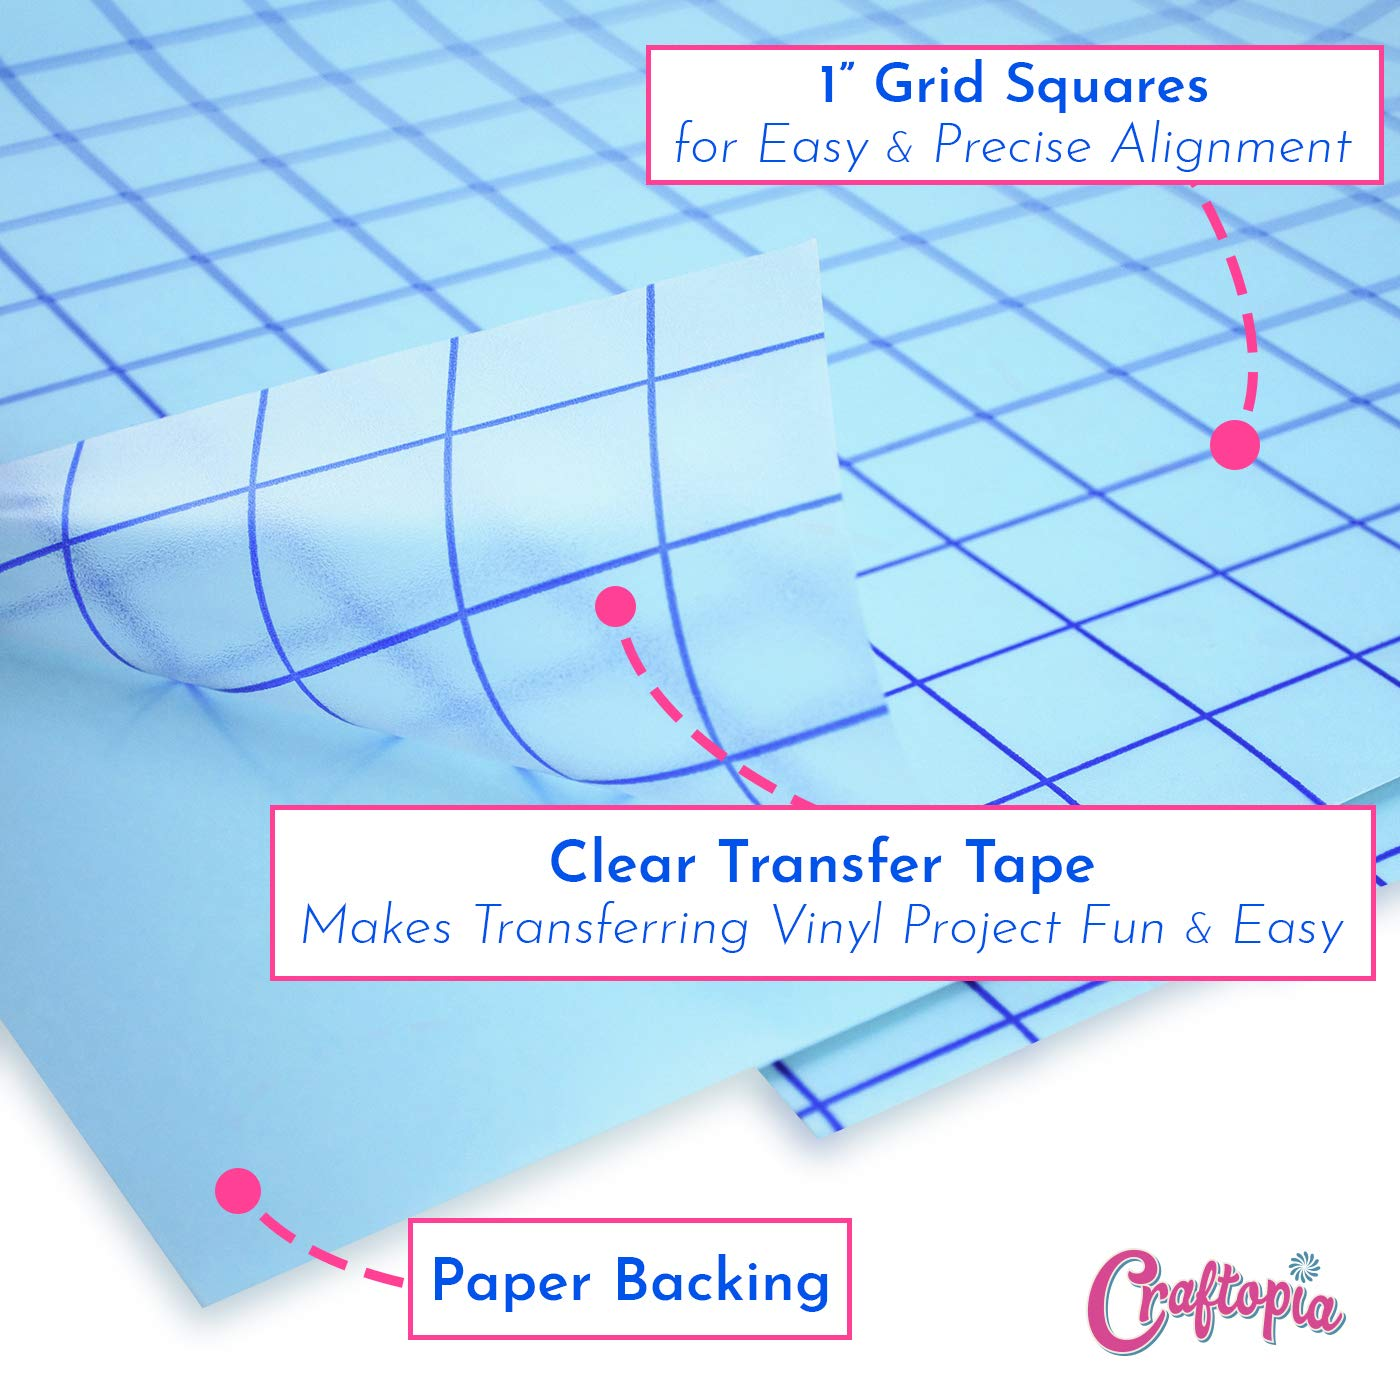 Vinyl Transfer Paper Tape Roll 12 x 12 FT Clear w//Blue Alignment Grid Application Tape Perfect for Cricut Cameo Silhouette Self Adhesive Oracal for Signs Crafts Stickers Decals Medium Tack